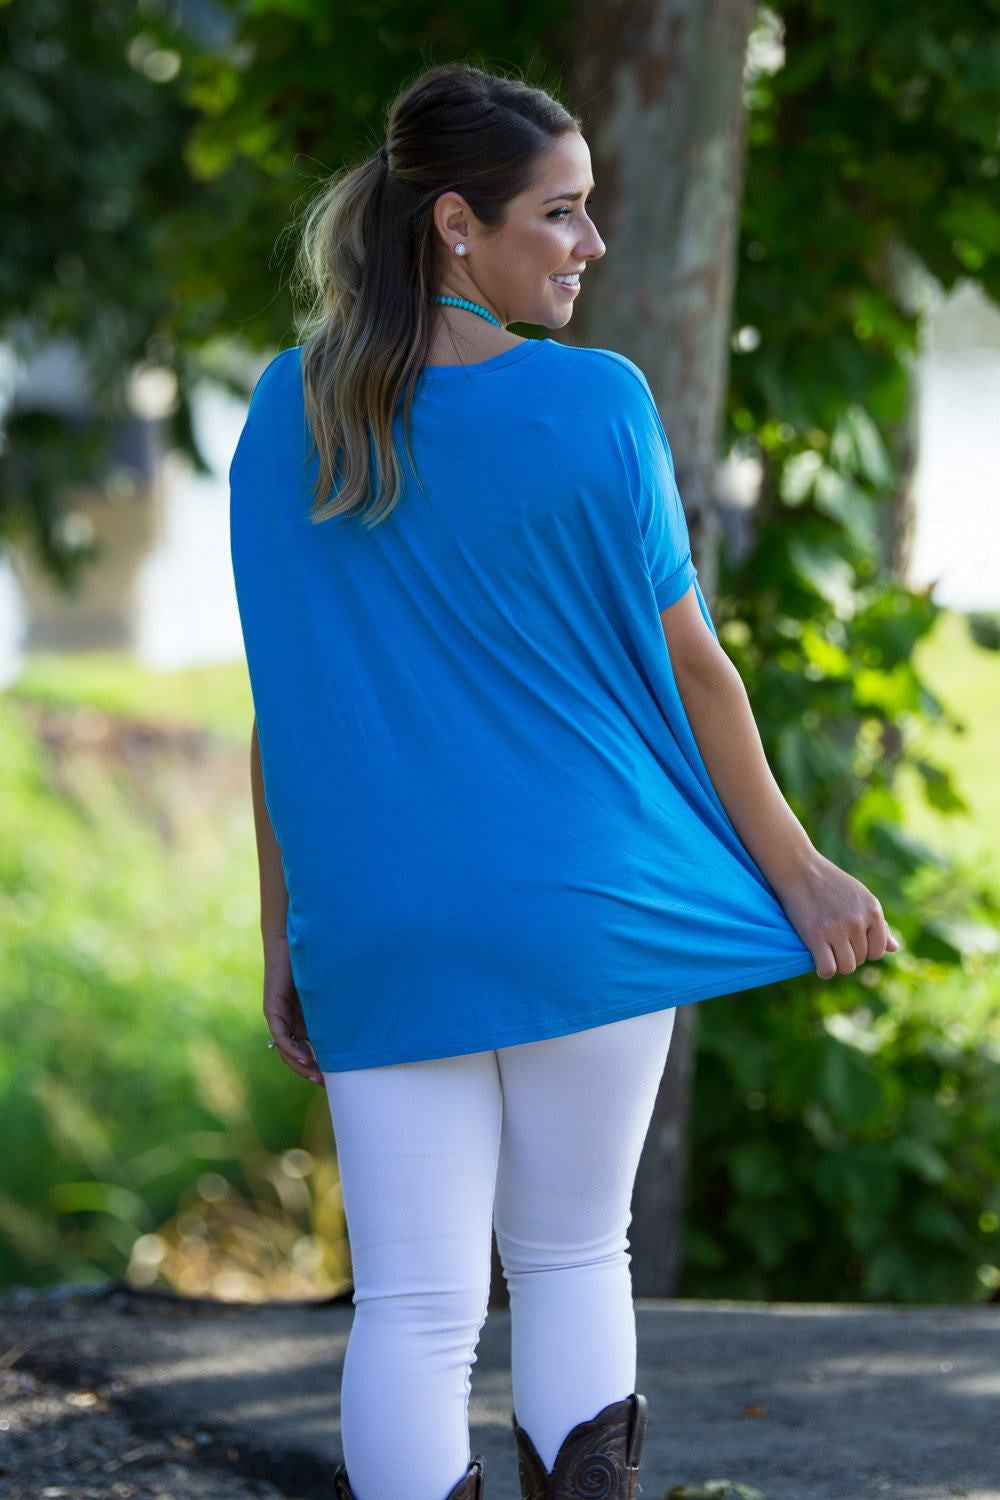 Short Sleeve V-Neck Piko Top - Dazzling Blue - Piko Clothing - 2